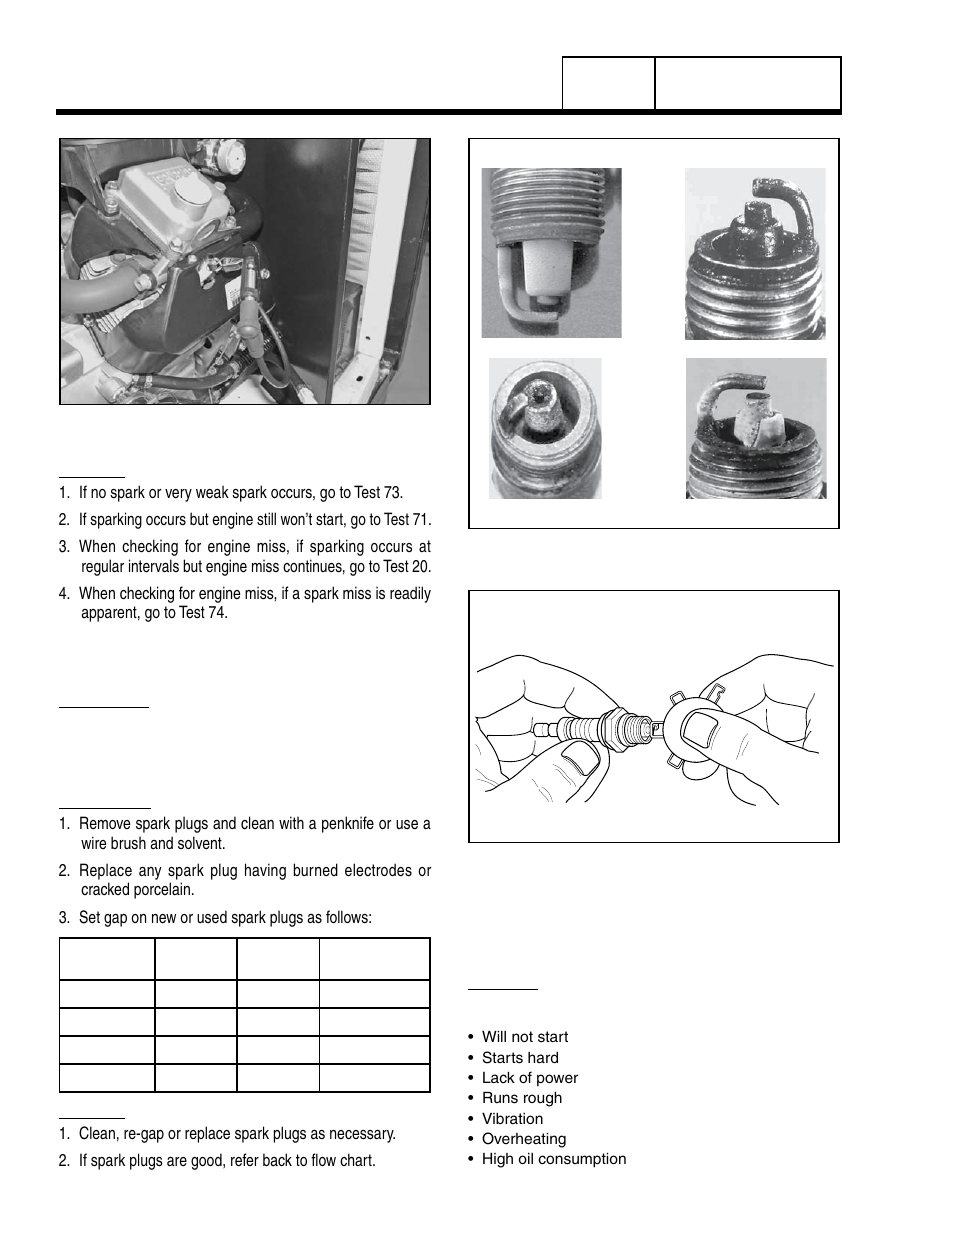 Test 71 – check spark plugs | Generac Power Systems 8 kW LP User Manual |